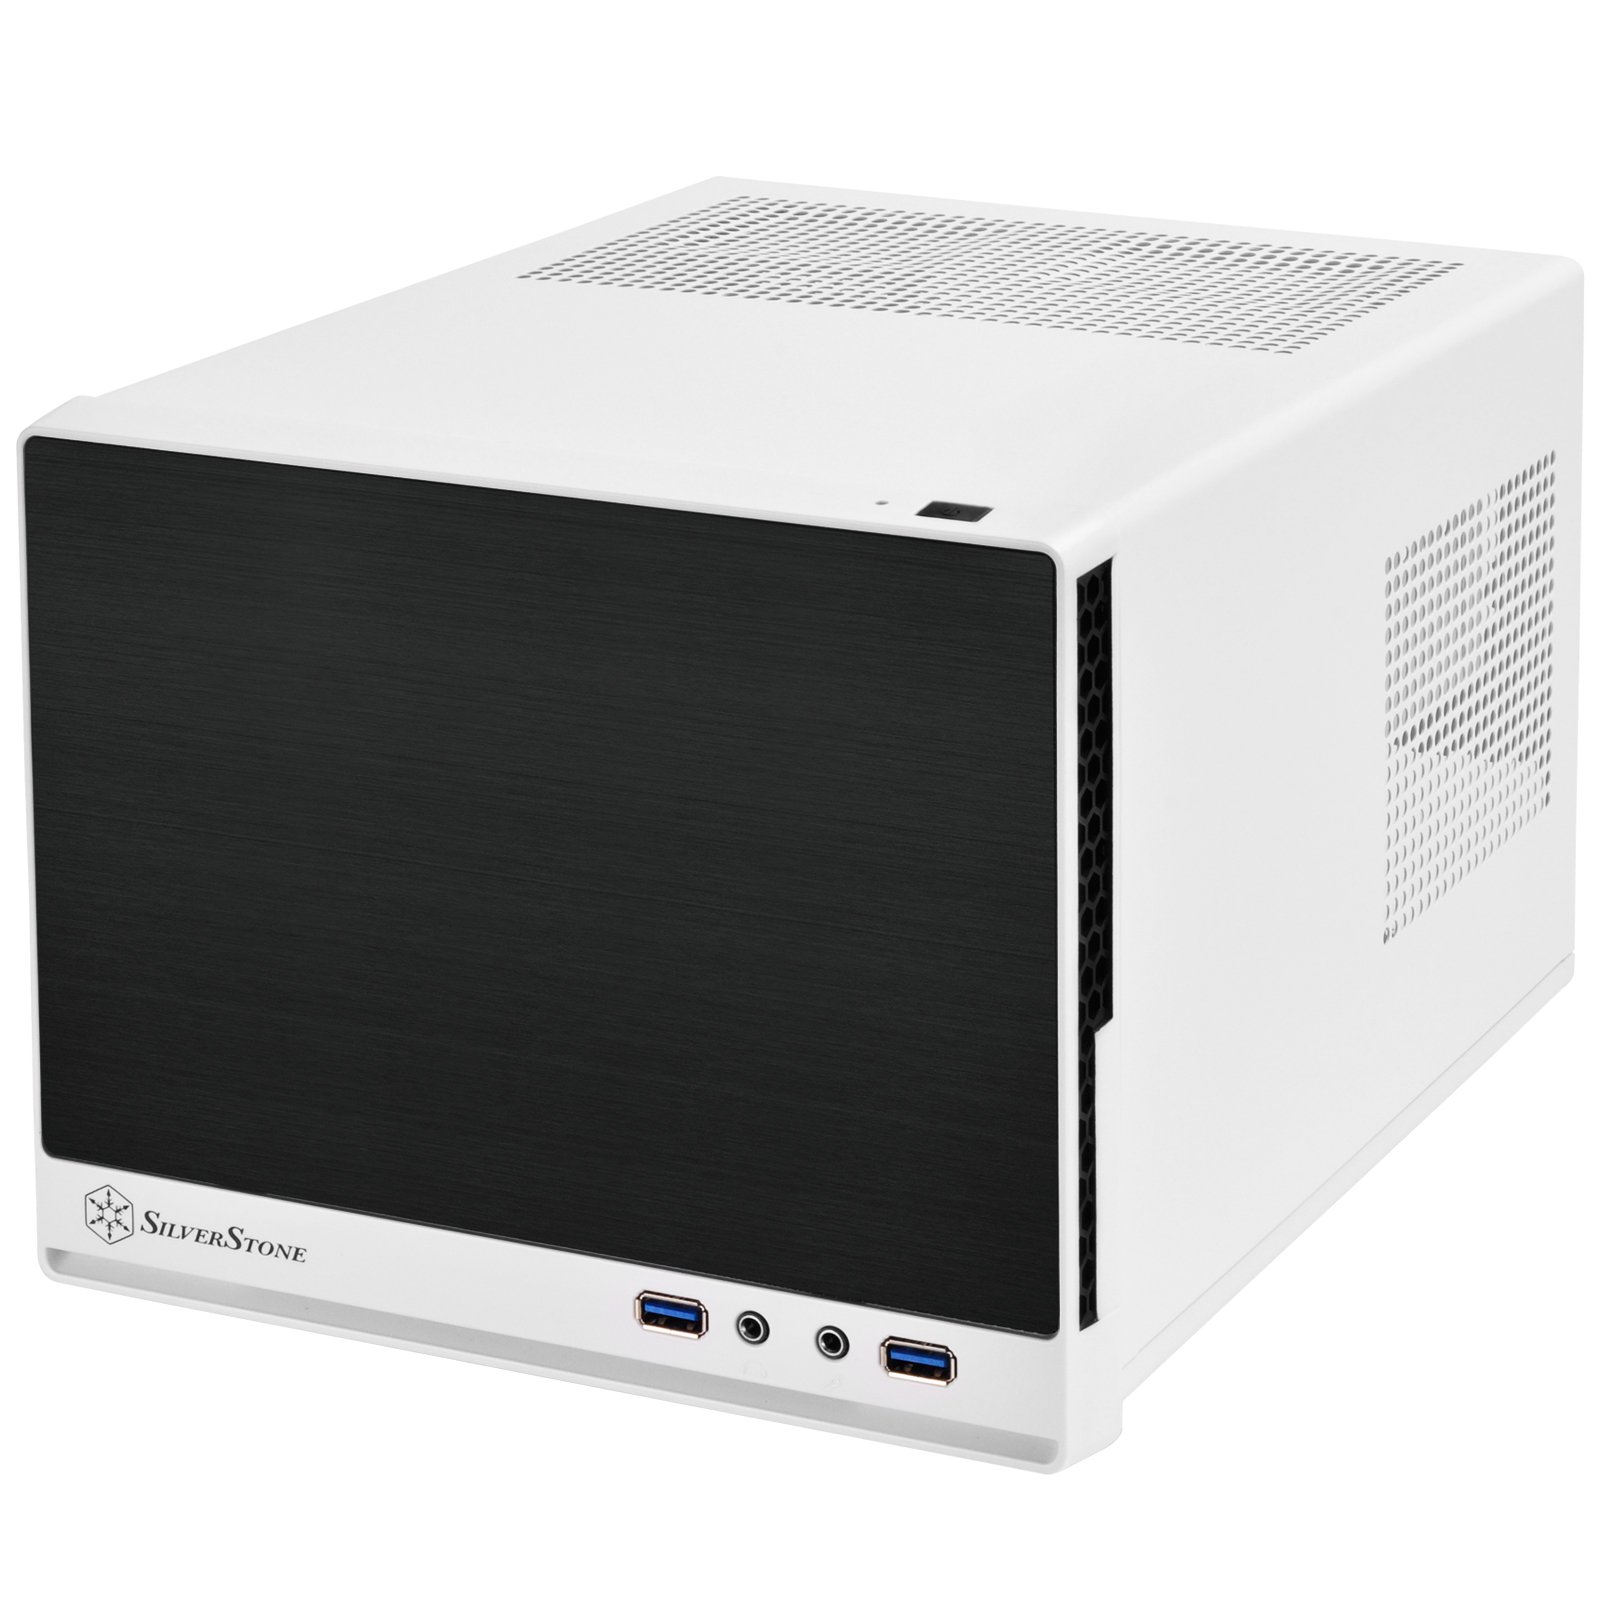 SilverStone Technology Mini-DTX Small Form Factor Computer Case SG13WB-Q Black/White